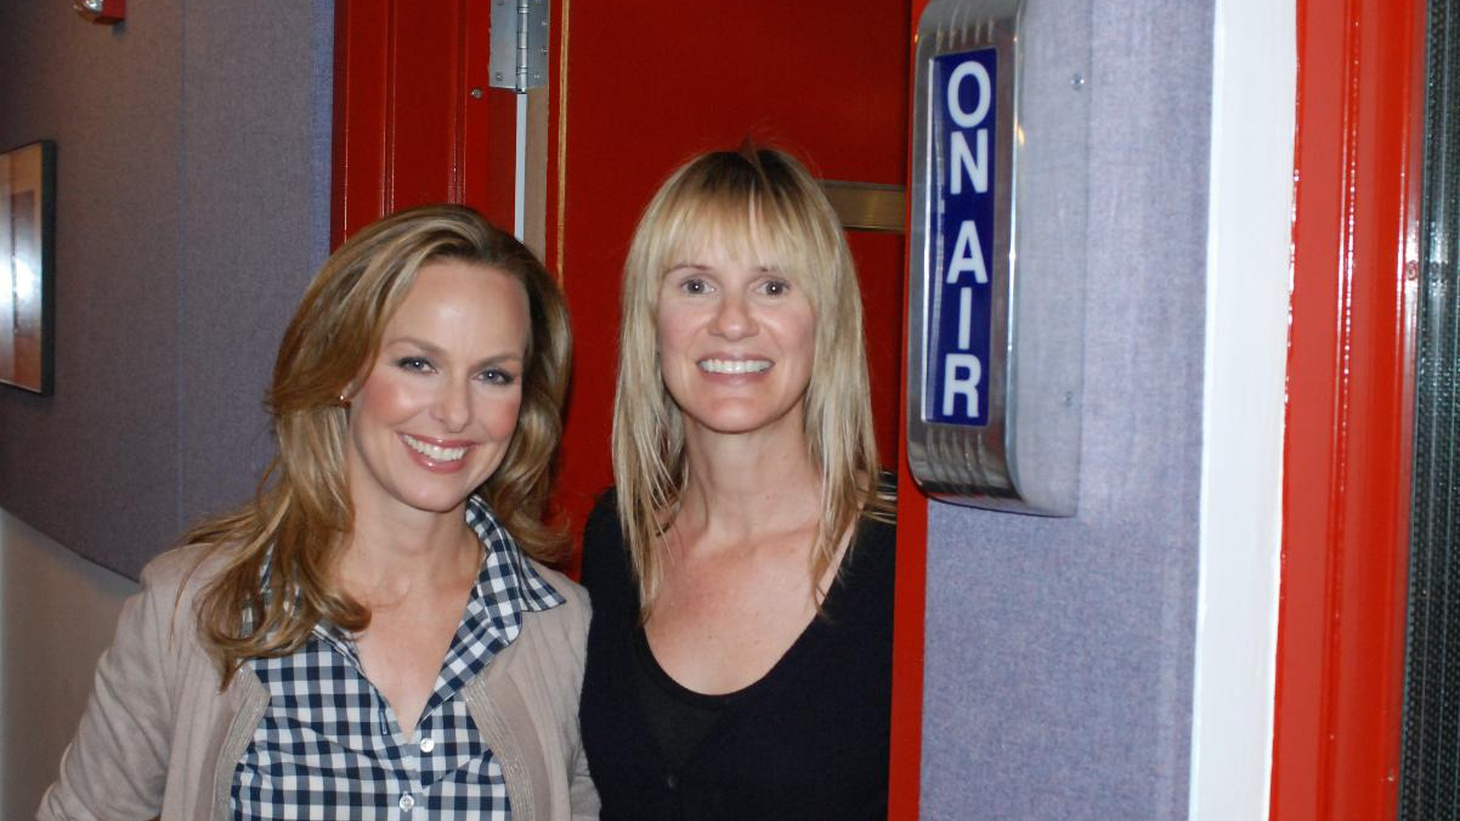 Actress Melora Hardin is a triple threat and her love of music, dance and acting comes through in her song choices, which range from the disco stylings of Donna Summer to the girl-next-door charm of Doris Day...